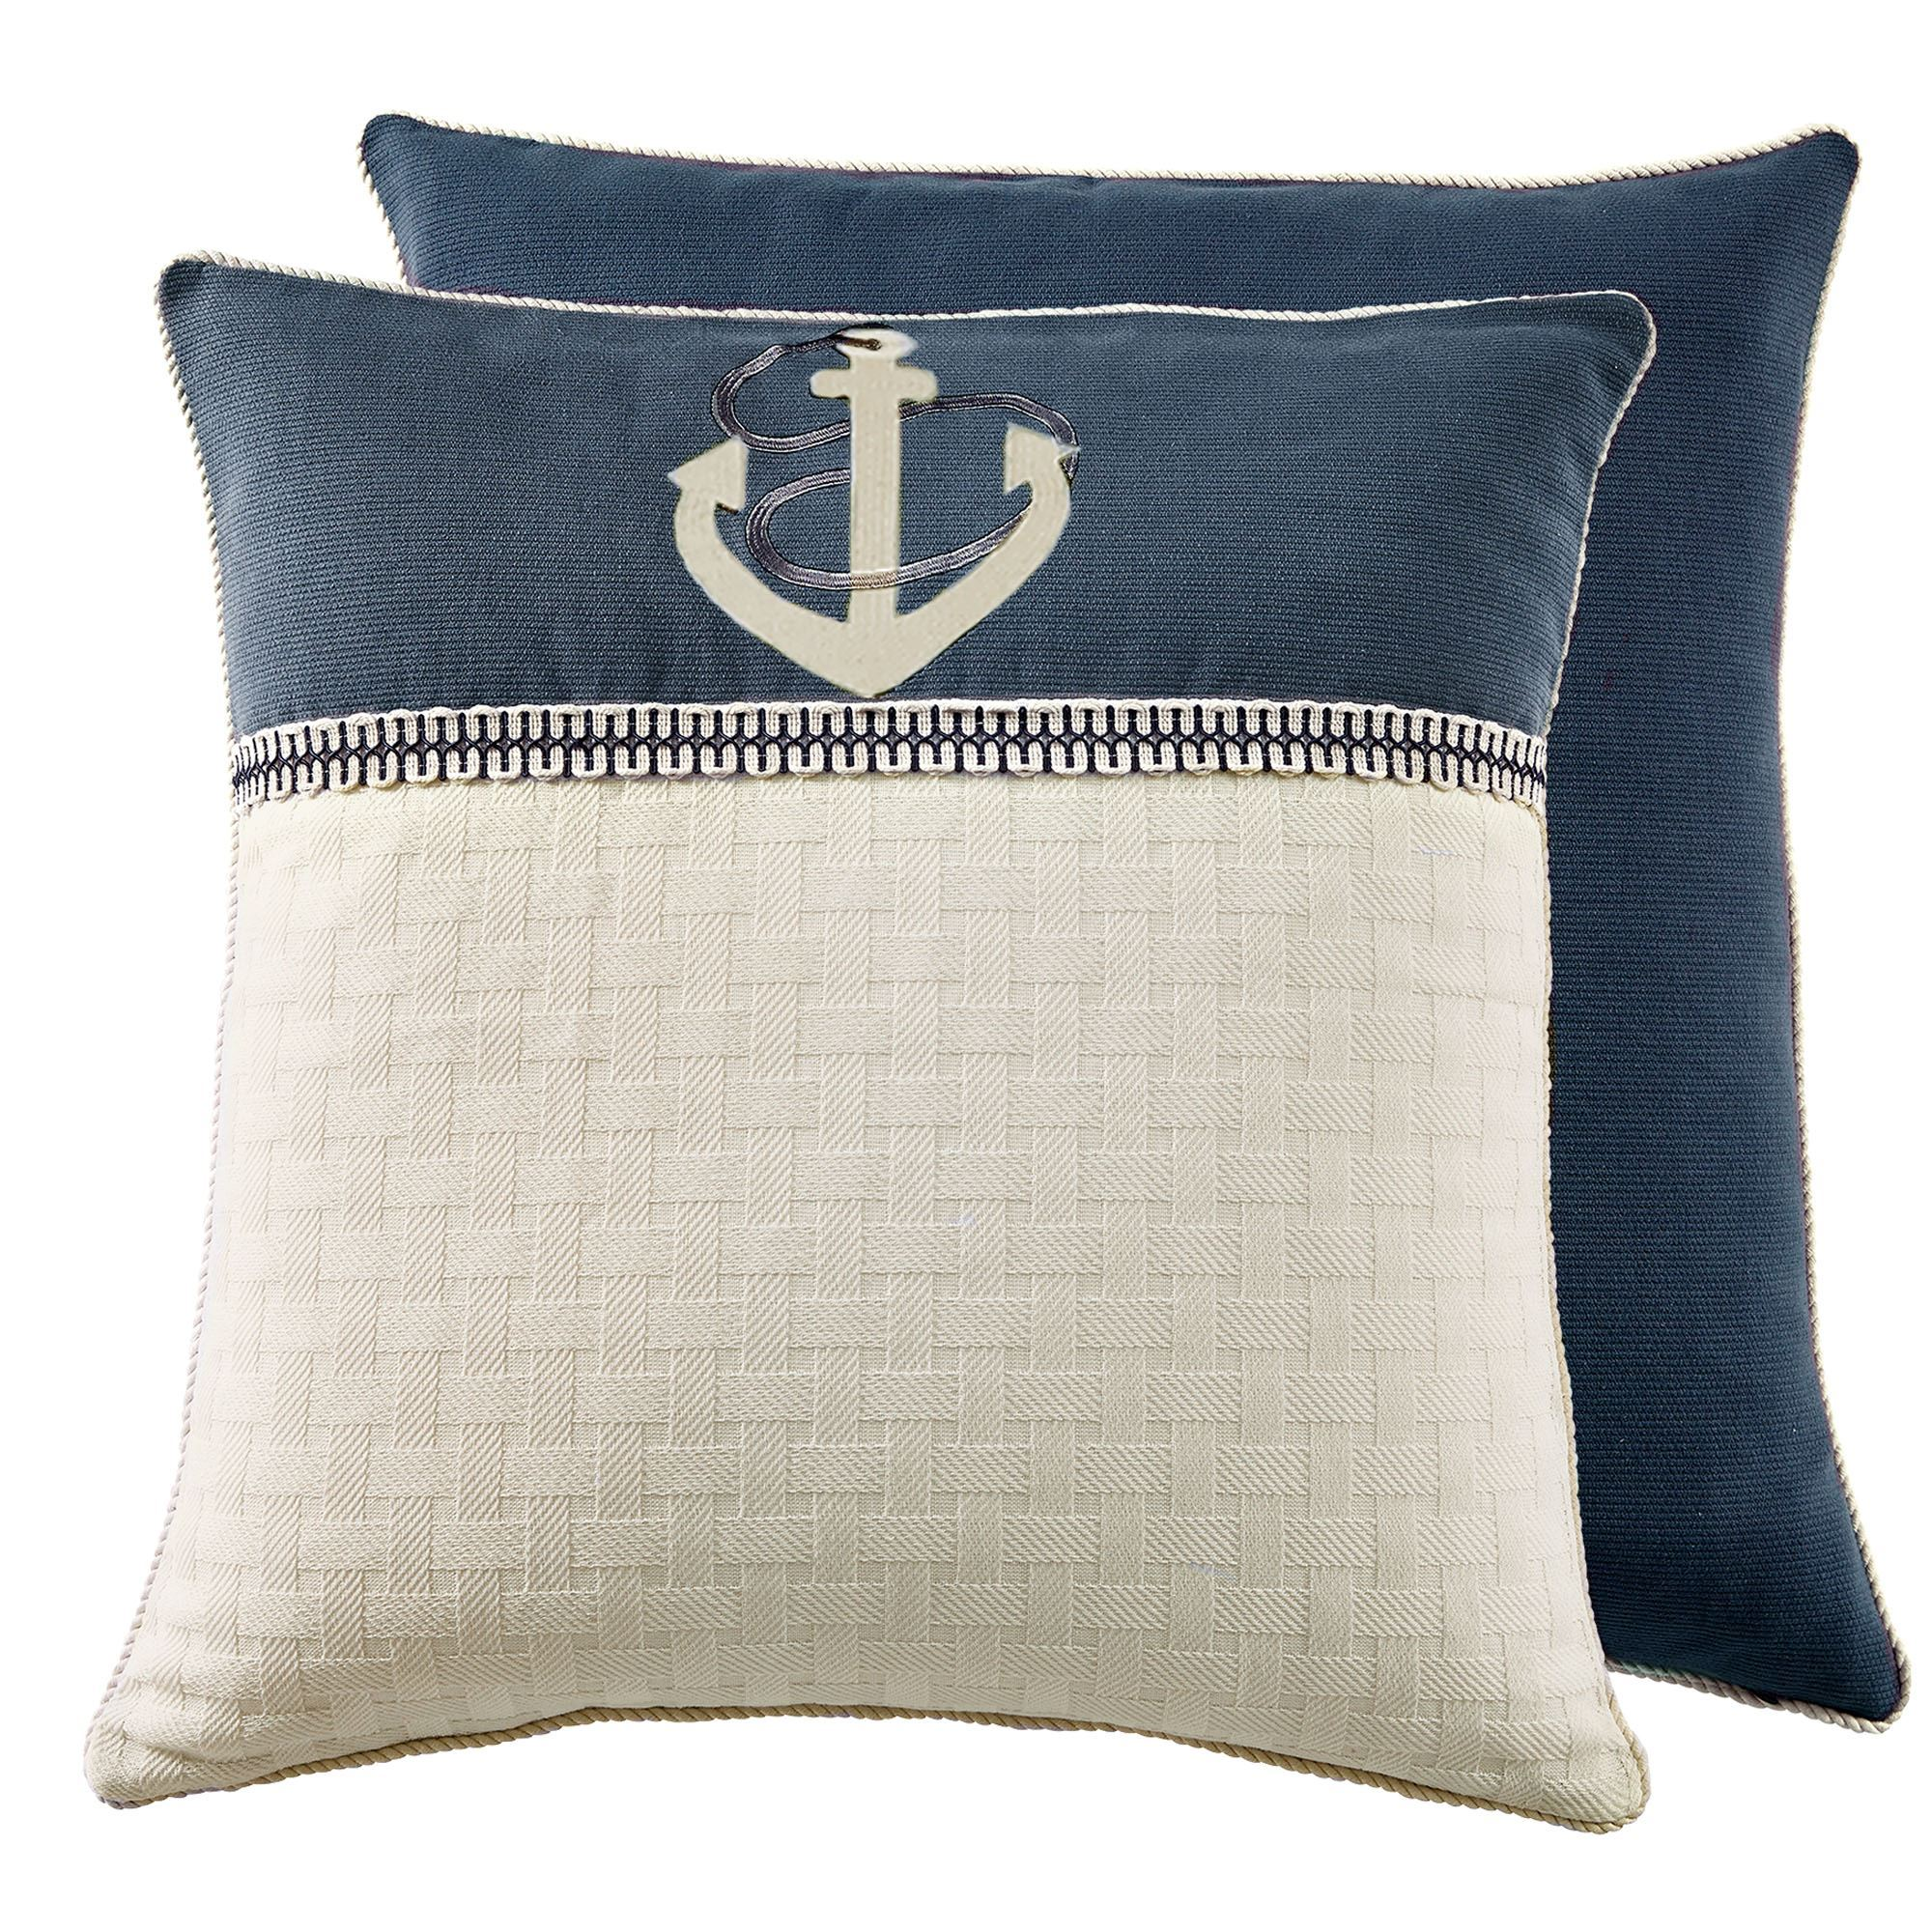 comforter nautical bedding decoration beyond jc bath size set and twin bedspreads comforters king sets jcpenney penneys queen